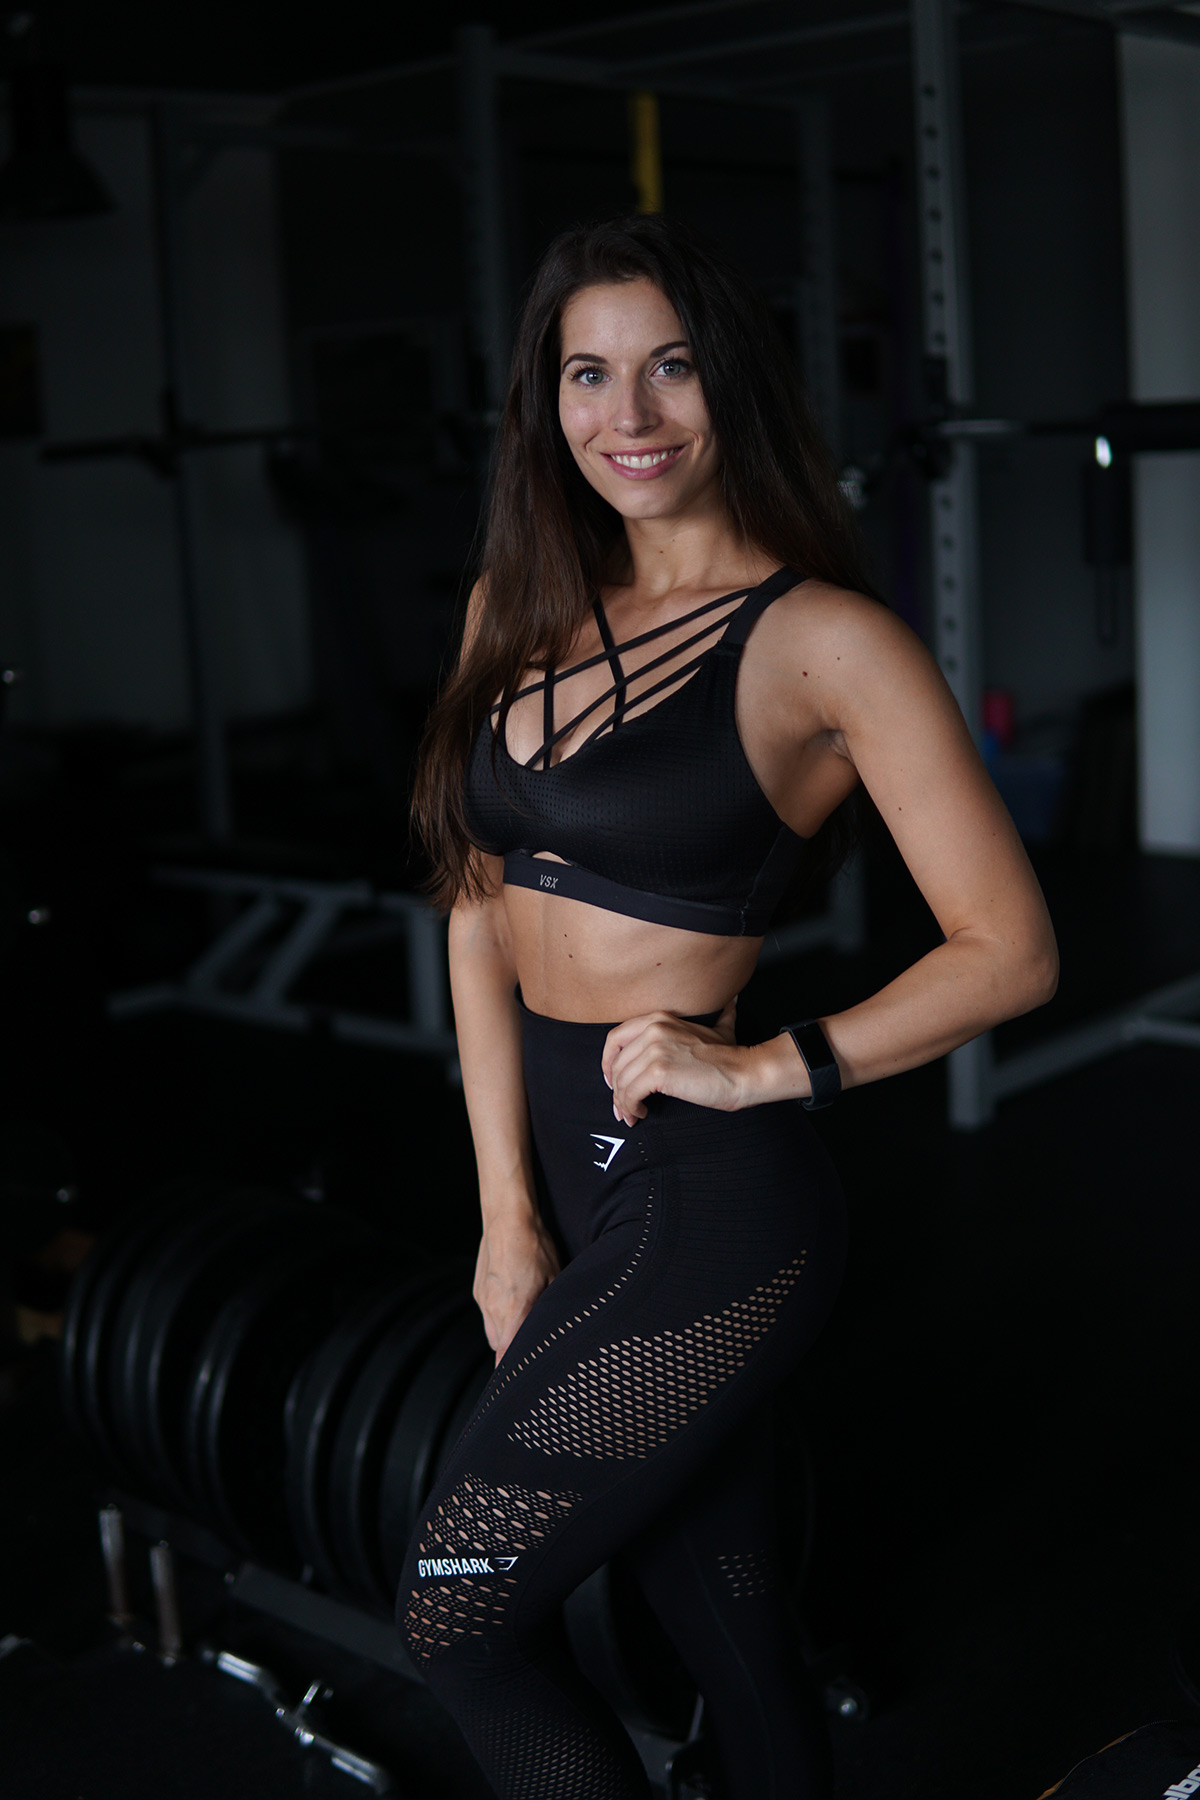 Eberling Fitness Talie Frohberg